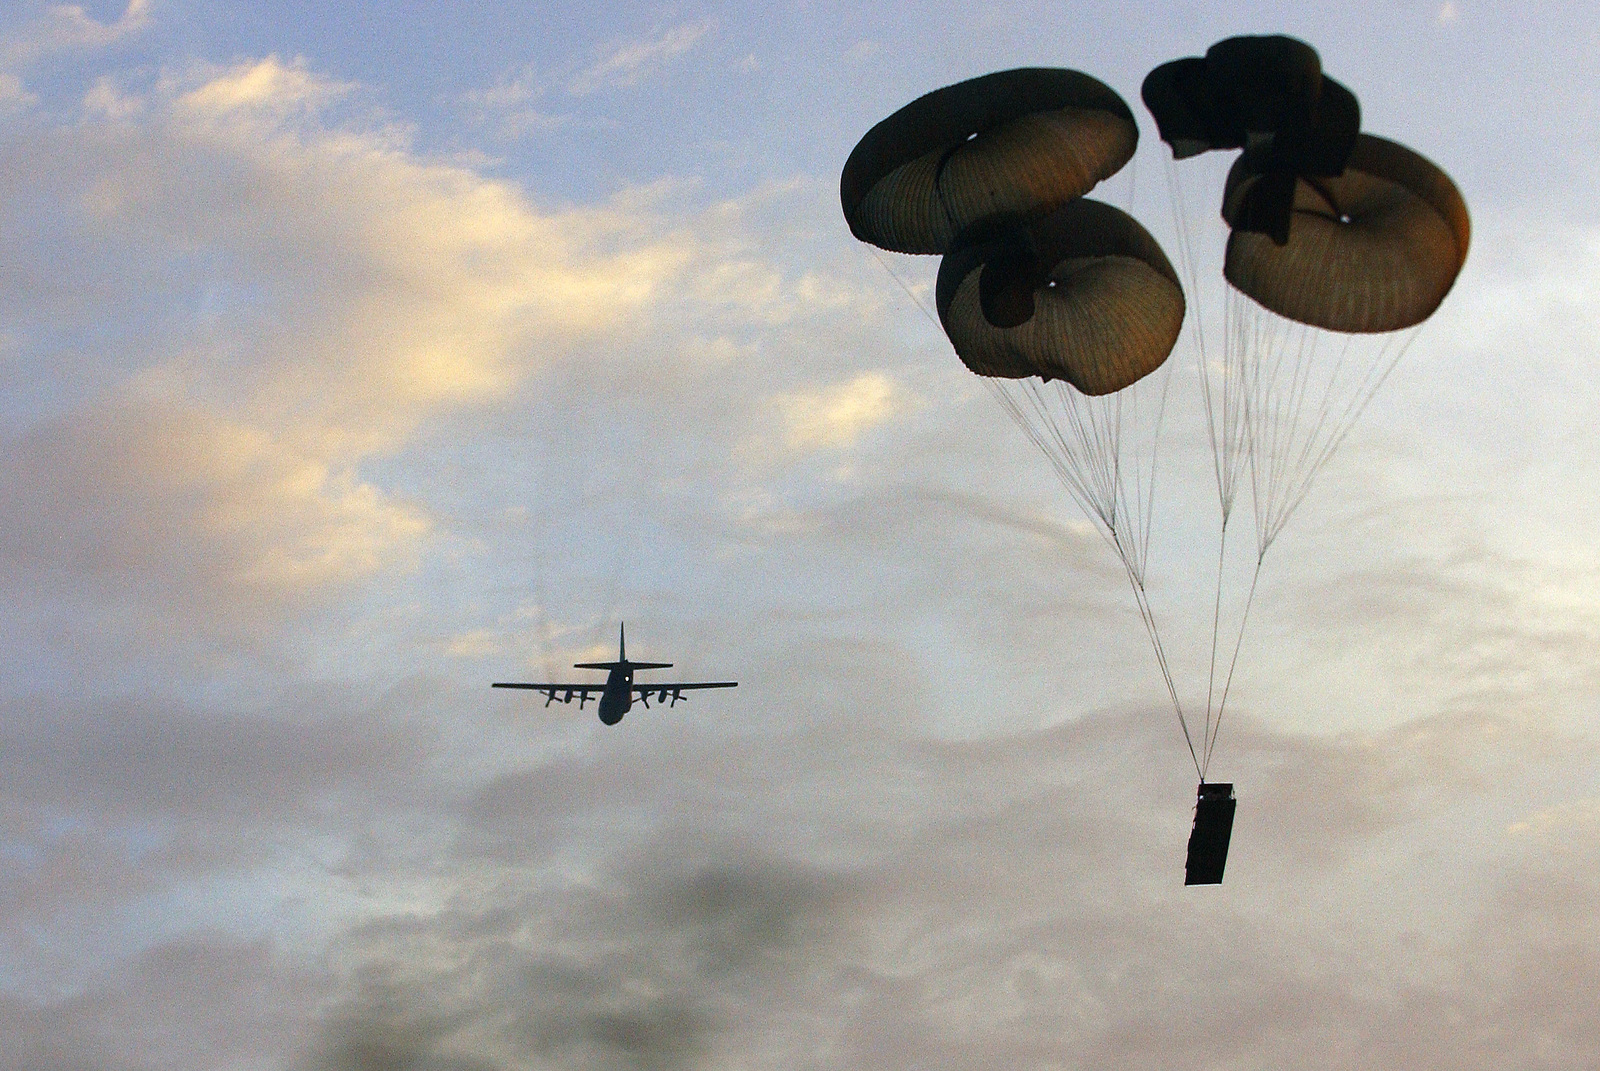 A US Air Force (USAF) C-130 Hercules cargo aircraft drops an M198 Towed Howitzer 105 mm cannon onto drop zone Holland at Fort Bragg, North Carolina (NC), in support of exercise Large Package week. Large Package Week is a joint US Army and US Air Force airdrop, designed to enhance service cohesiveness. (SUBSTANDARD)